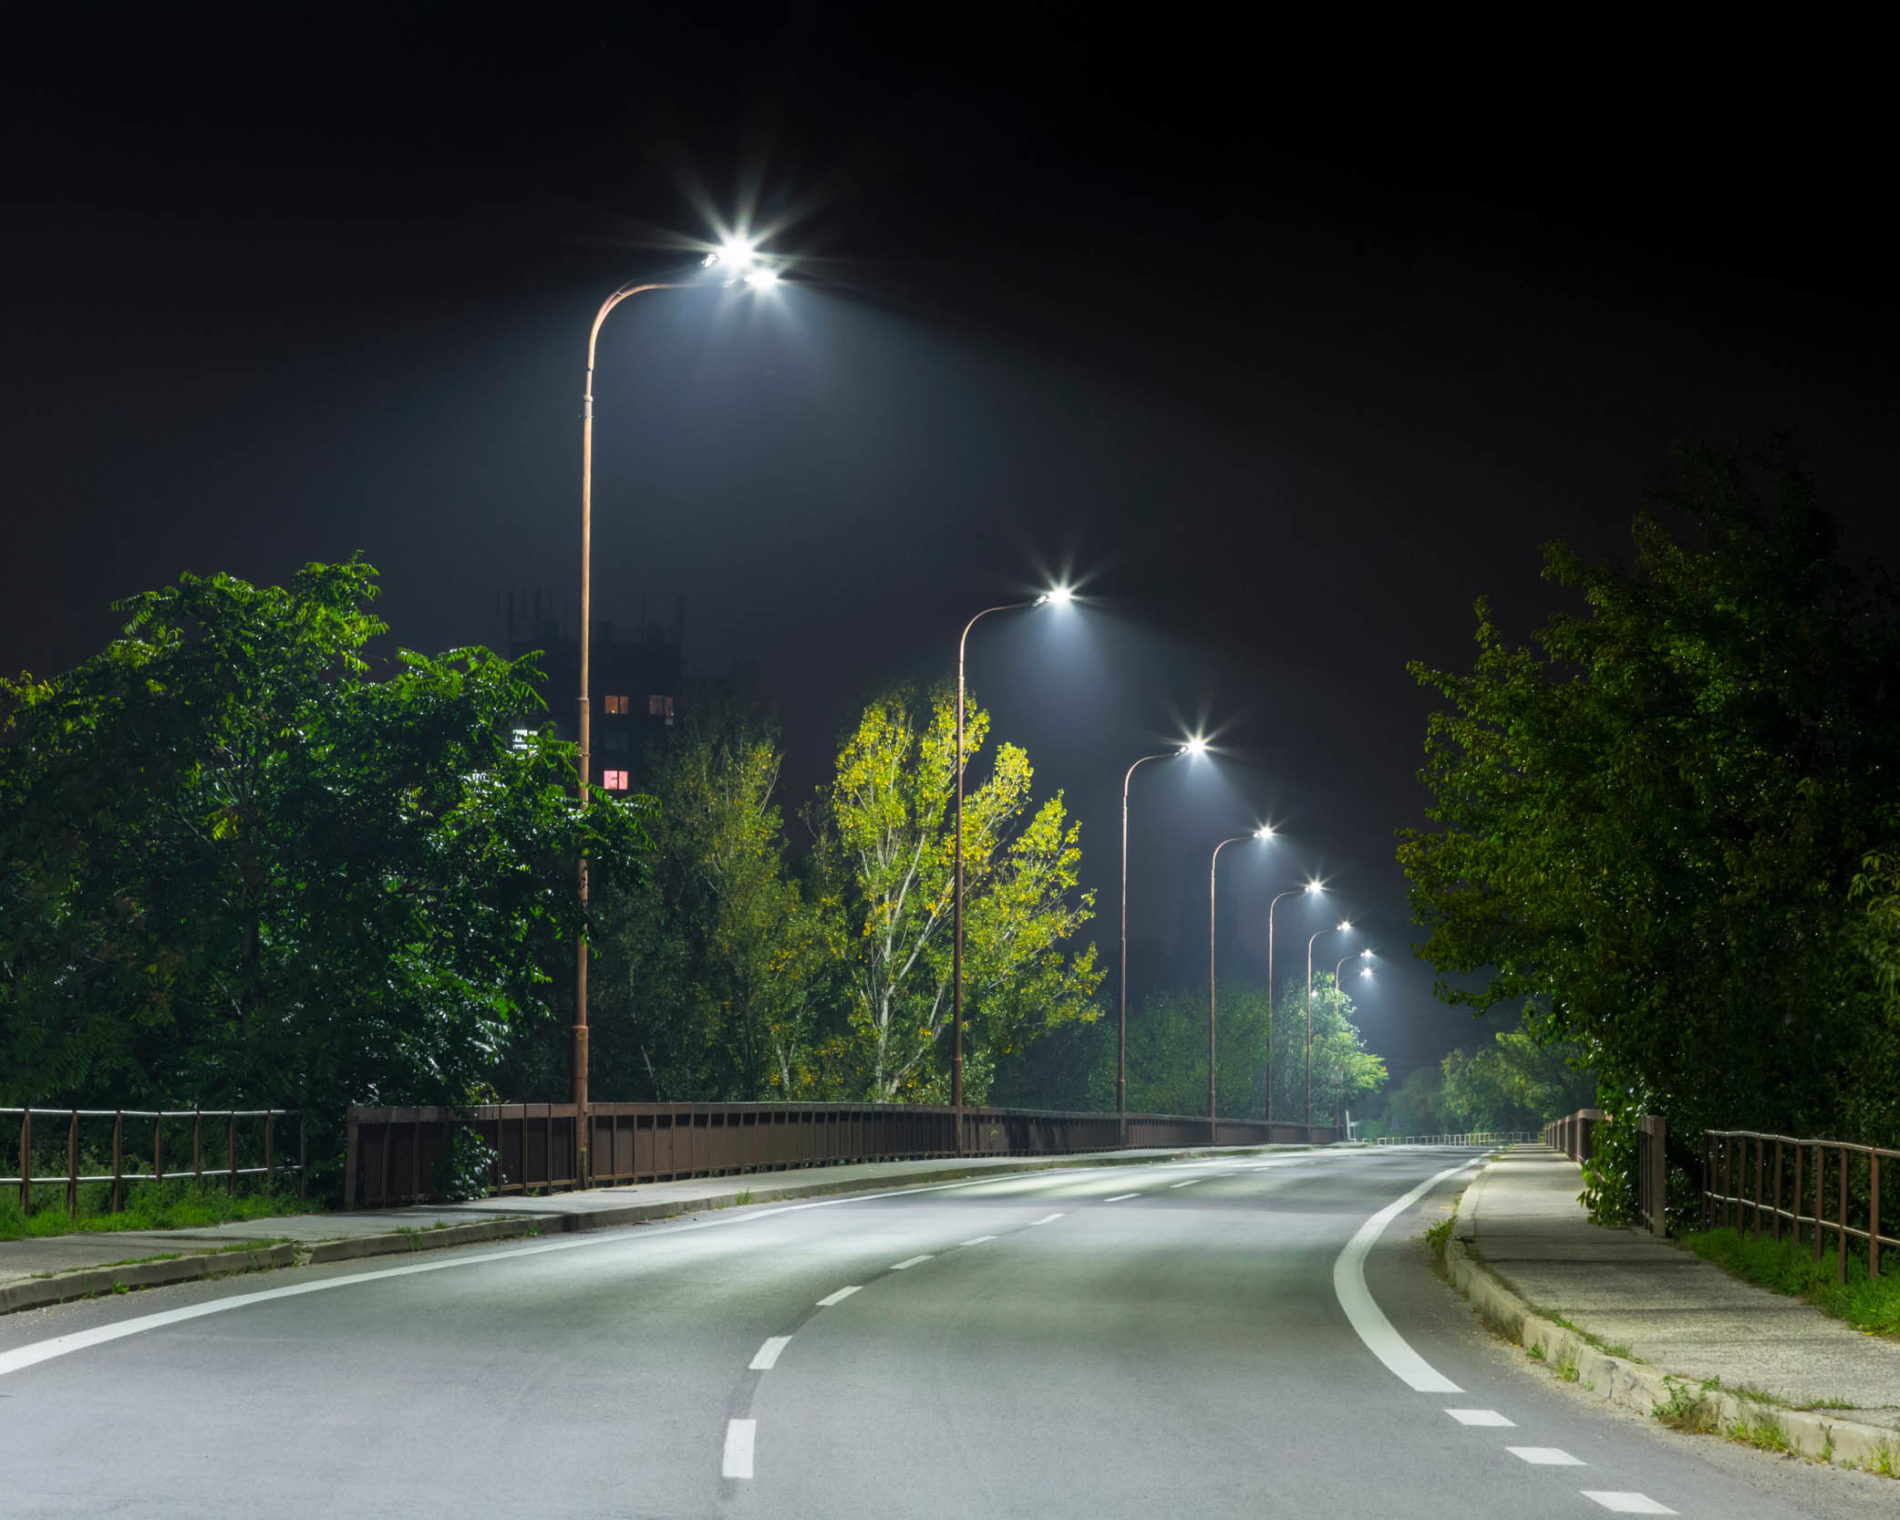 Streetlights along road at night